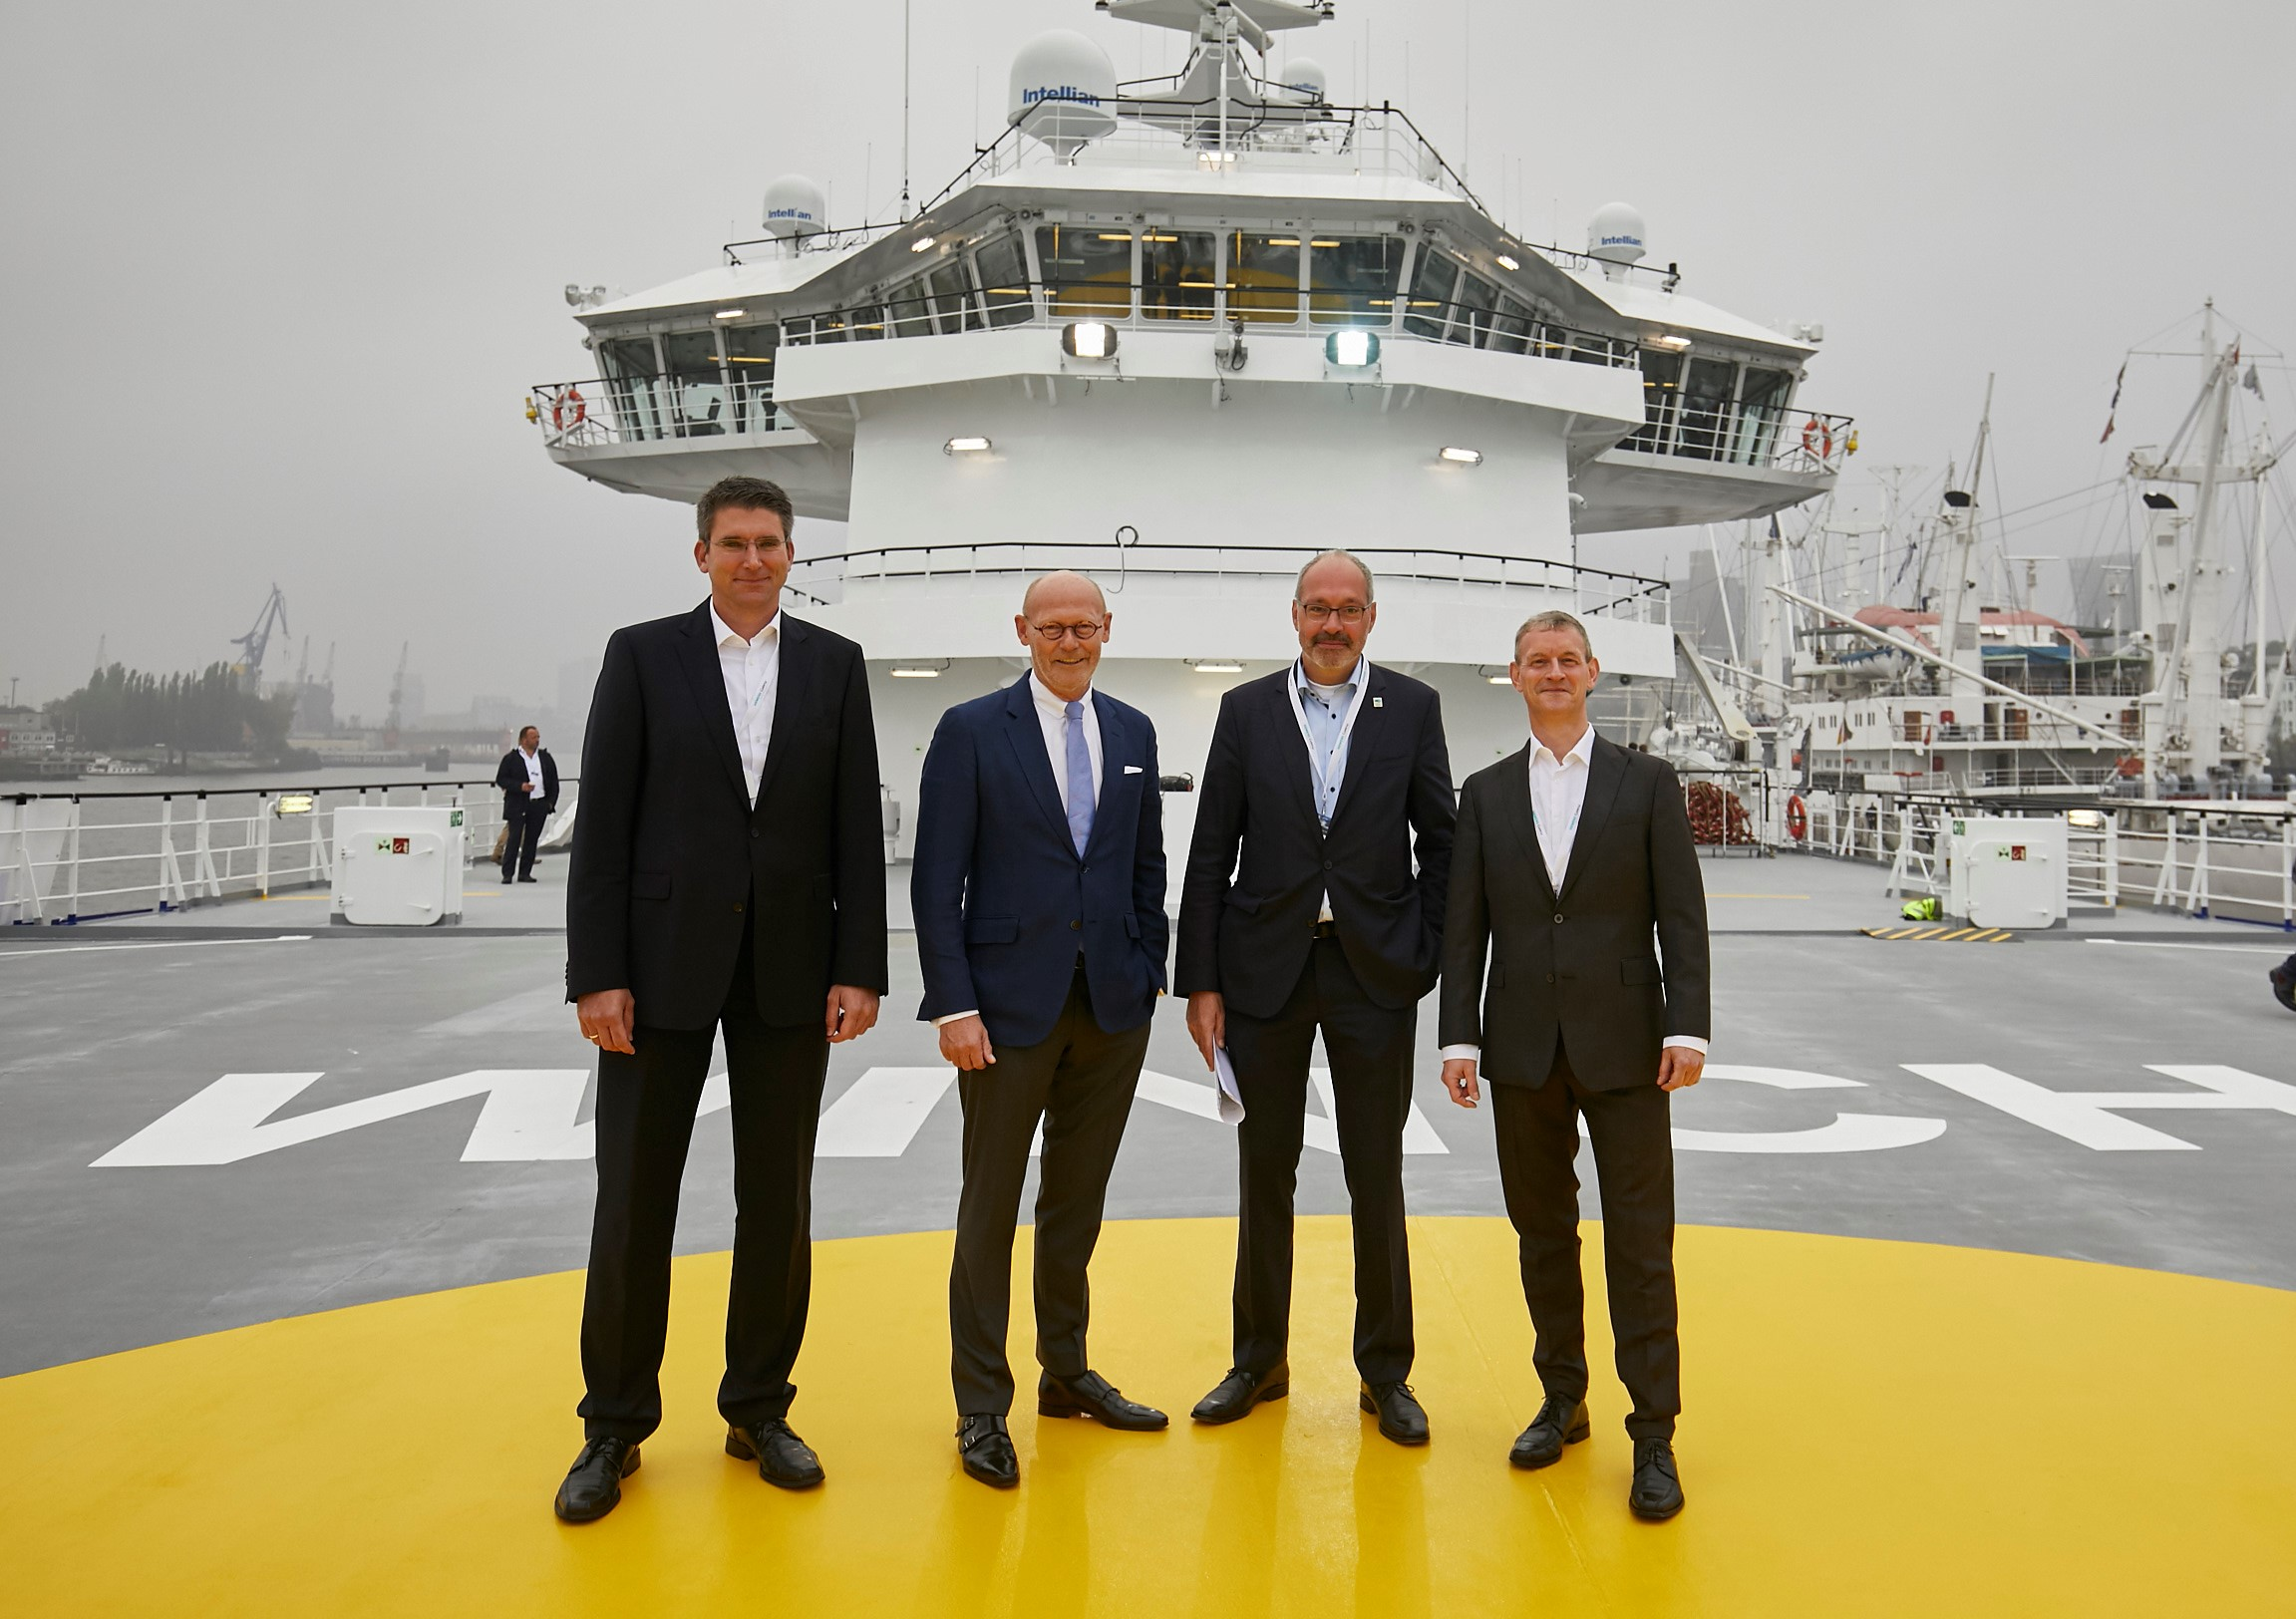 "Photo 1: Commissioning of the special vessel Bibby Wavemaster Horizon with Dr. Marc Becker, Managing Director of Siemens Gamesa Renewable Energy GmbH & Co. KG, Michael Westhagemann, Senator for Economics, Transport and Innovation of the Free and Hanseatic City of Hamburg, Andreas Wagner, Managing Director ""Stiftung Offshore"" and Stefan Kansy, Head of New Construction Projects at EnBW. (Photo: EnBW)"